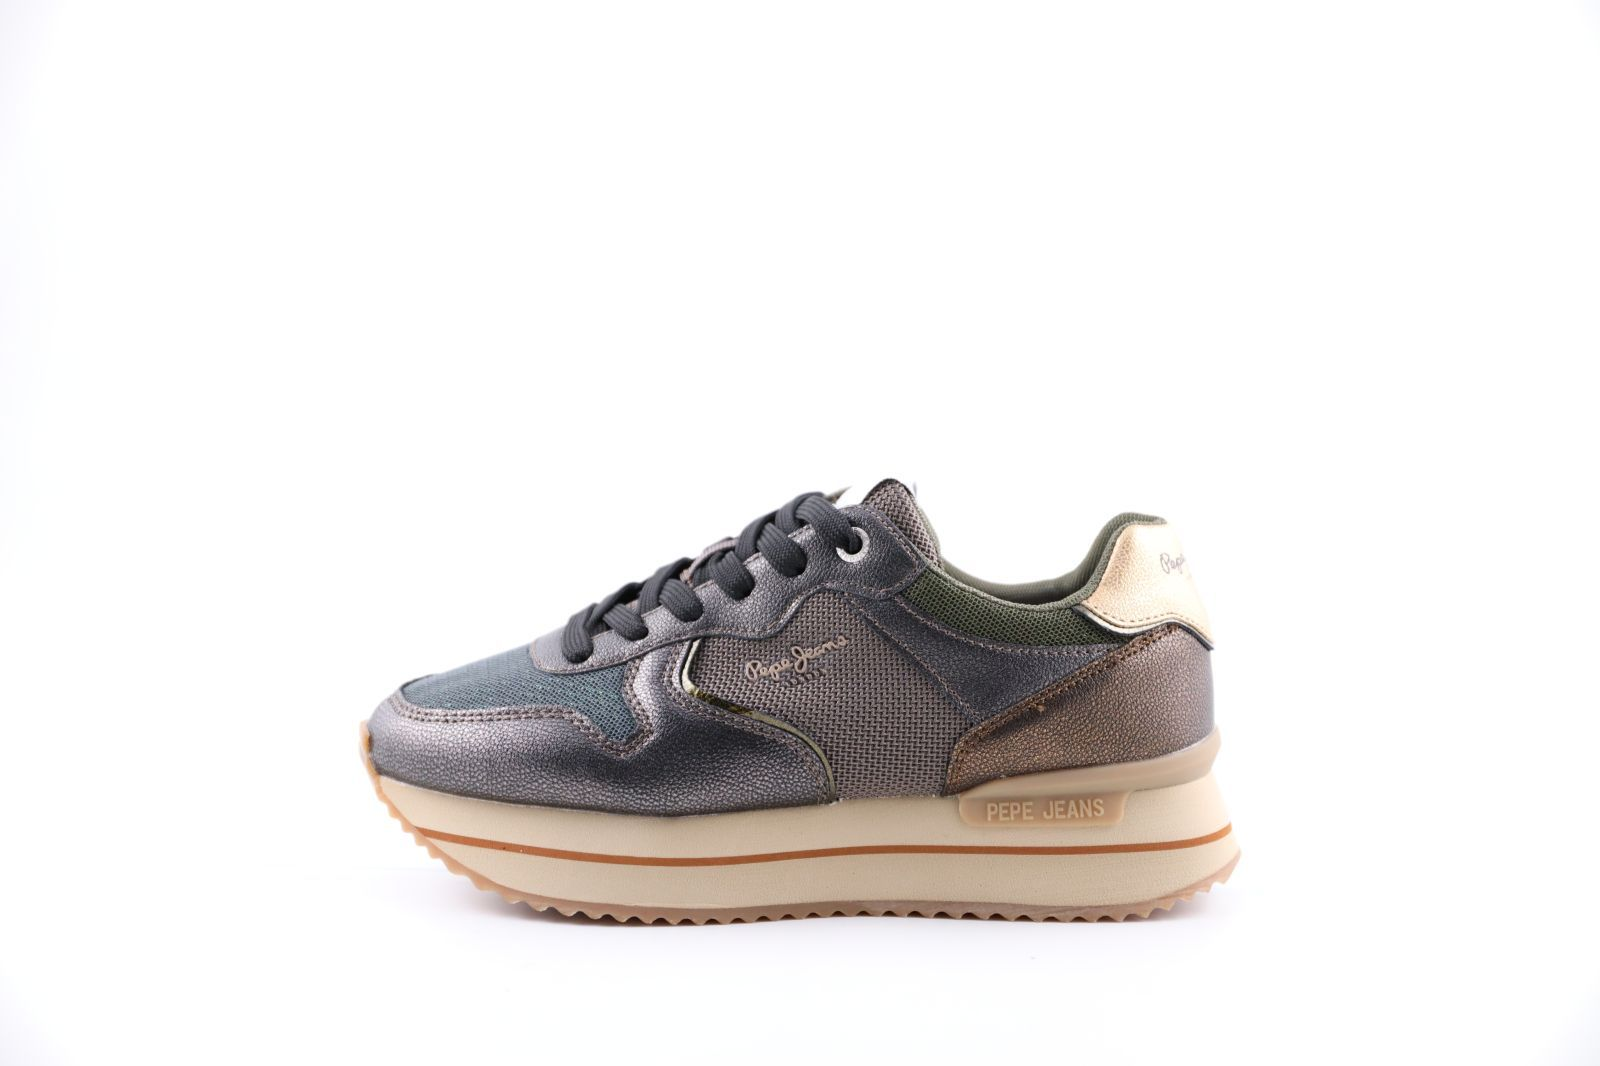 Pepe Jeans Sneackers Bronze/Kaki dames (Rusper City - PLS31068) - Marques à Suivre